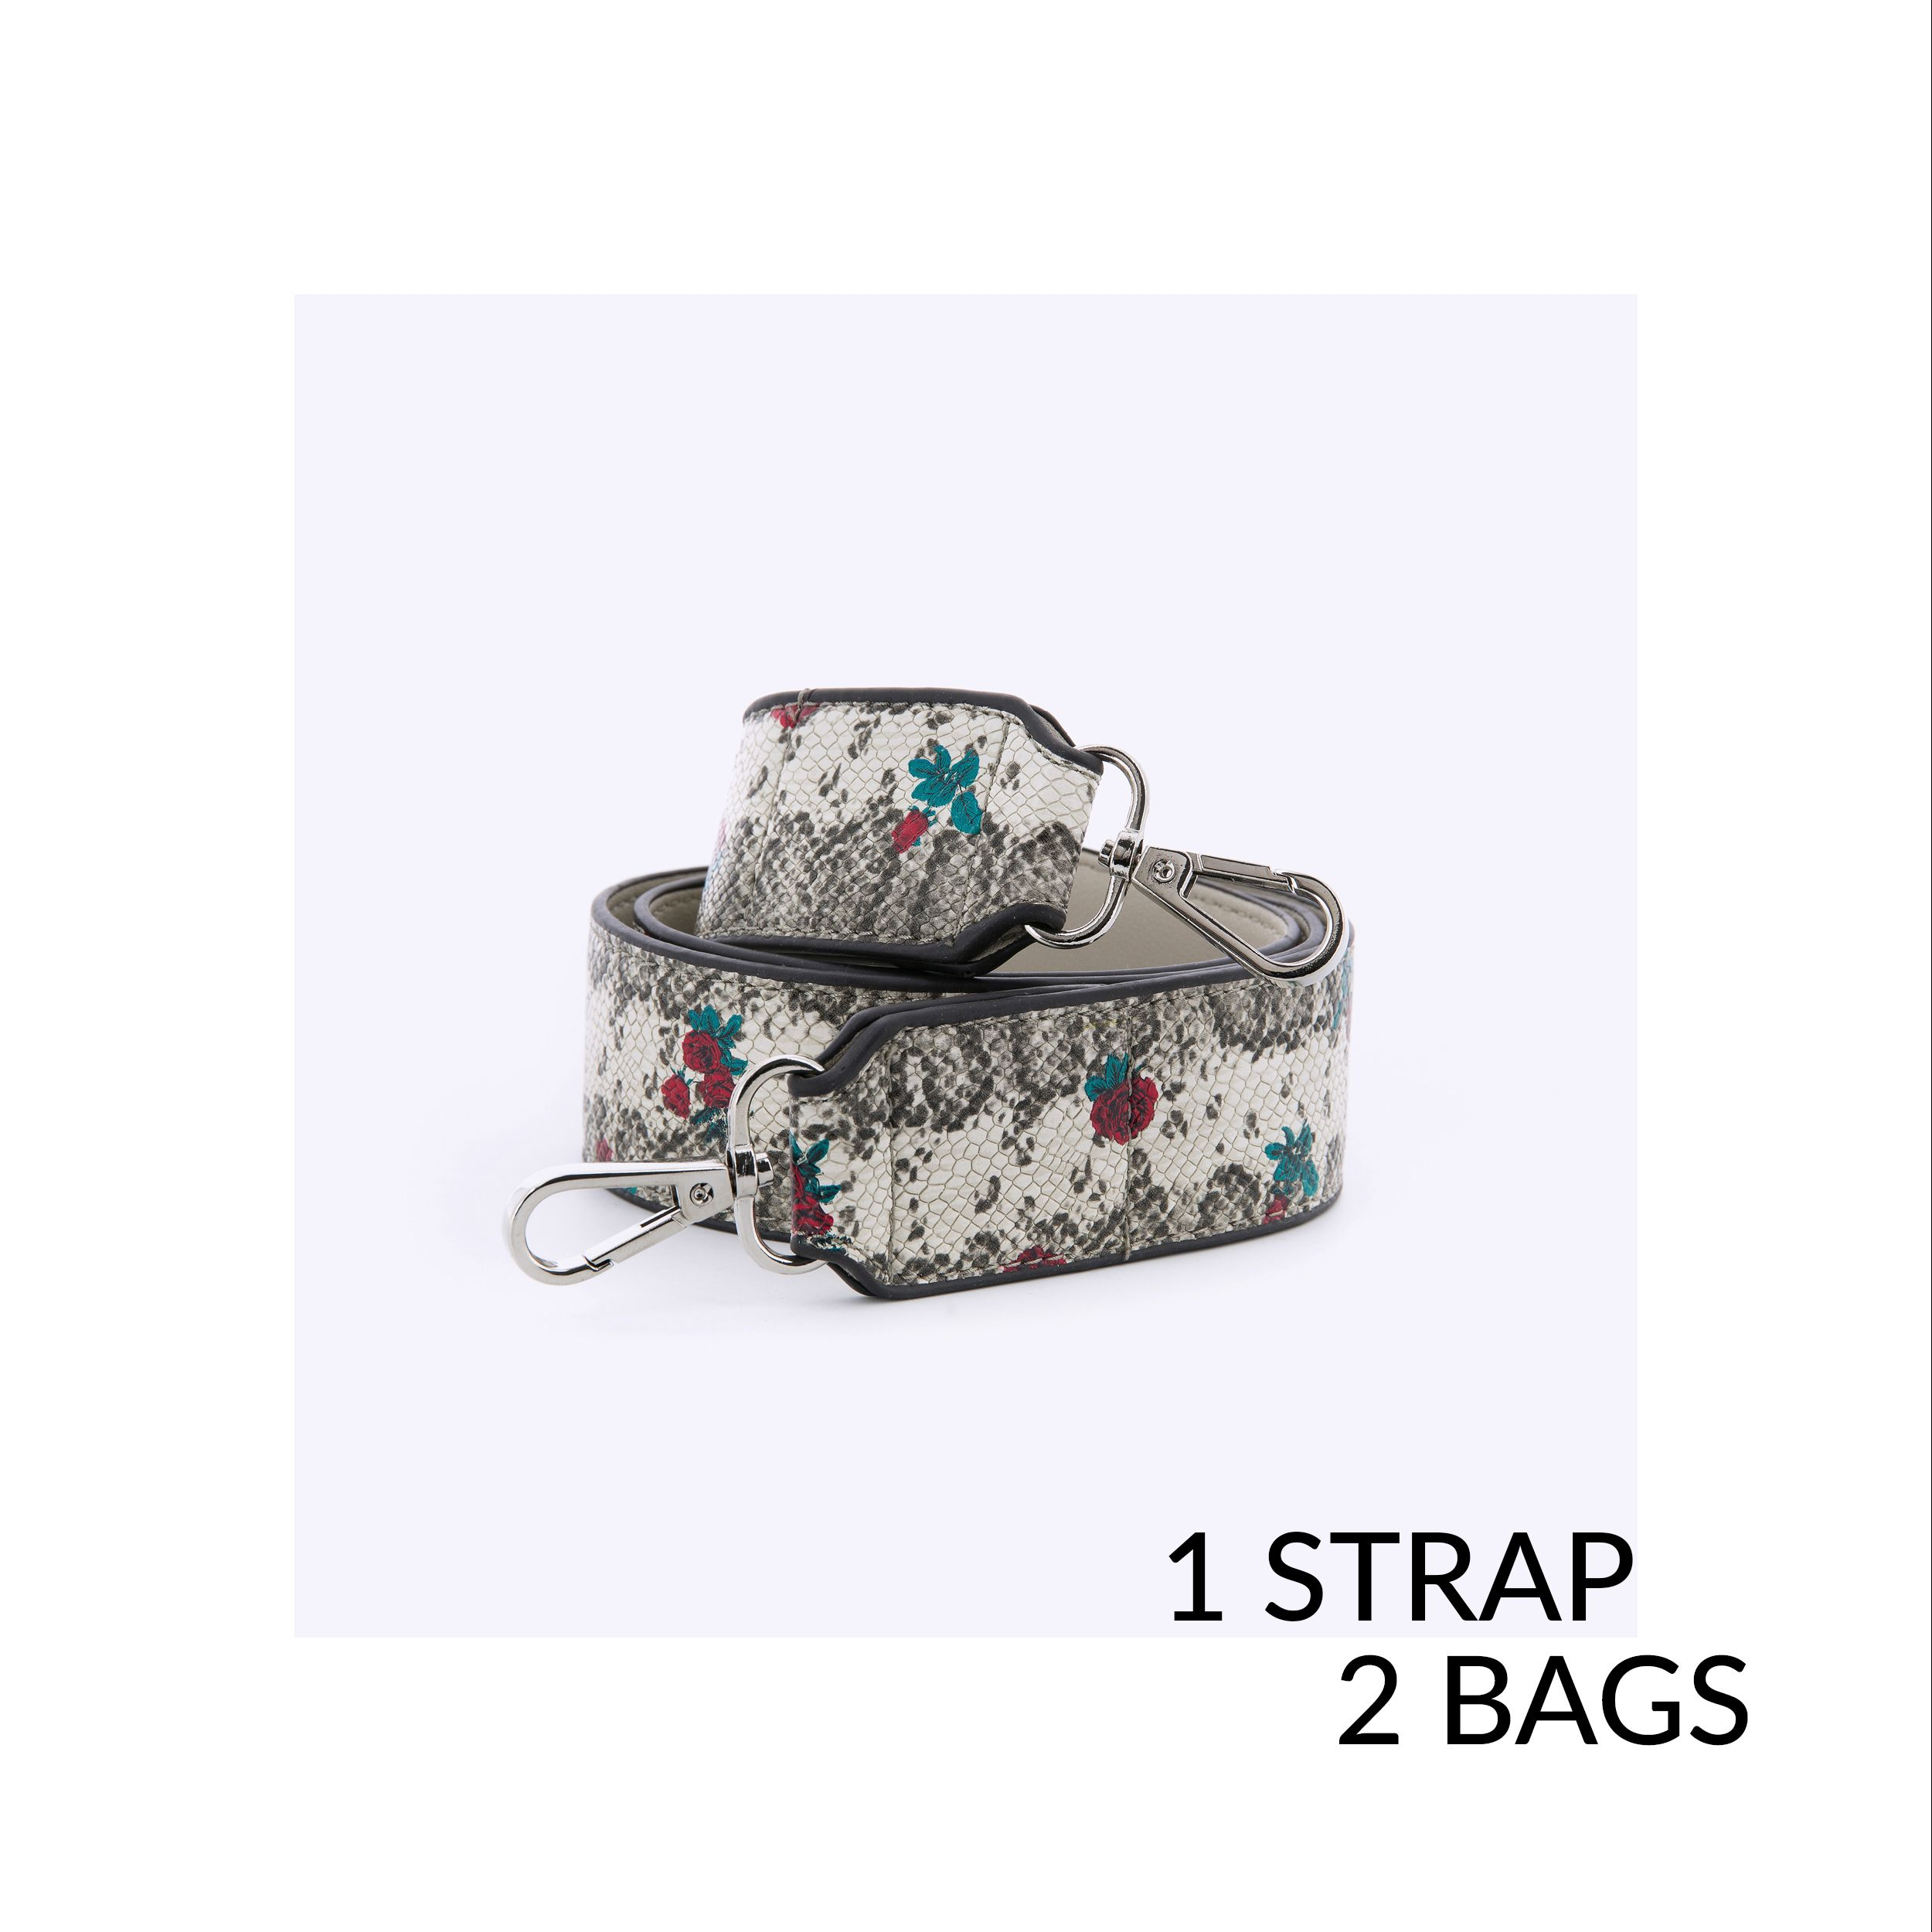 Transform your bag! 1 Strap, 2 Bags